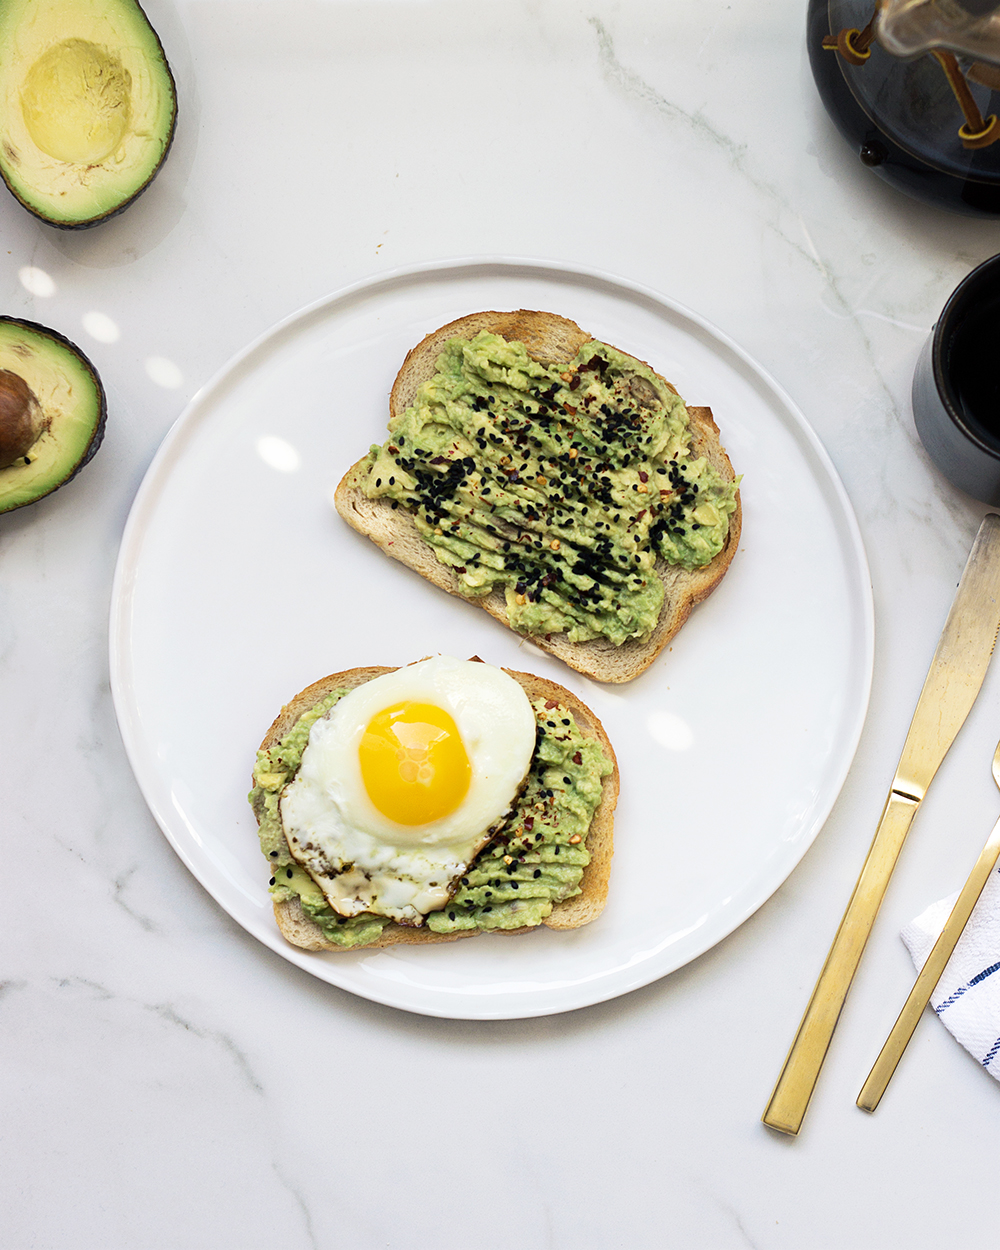 livvyland-blog-olivia-watson-ultimate-avocado-toast-recipe-best-avo-breakfast-idea-jessica-lee